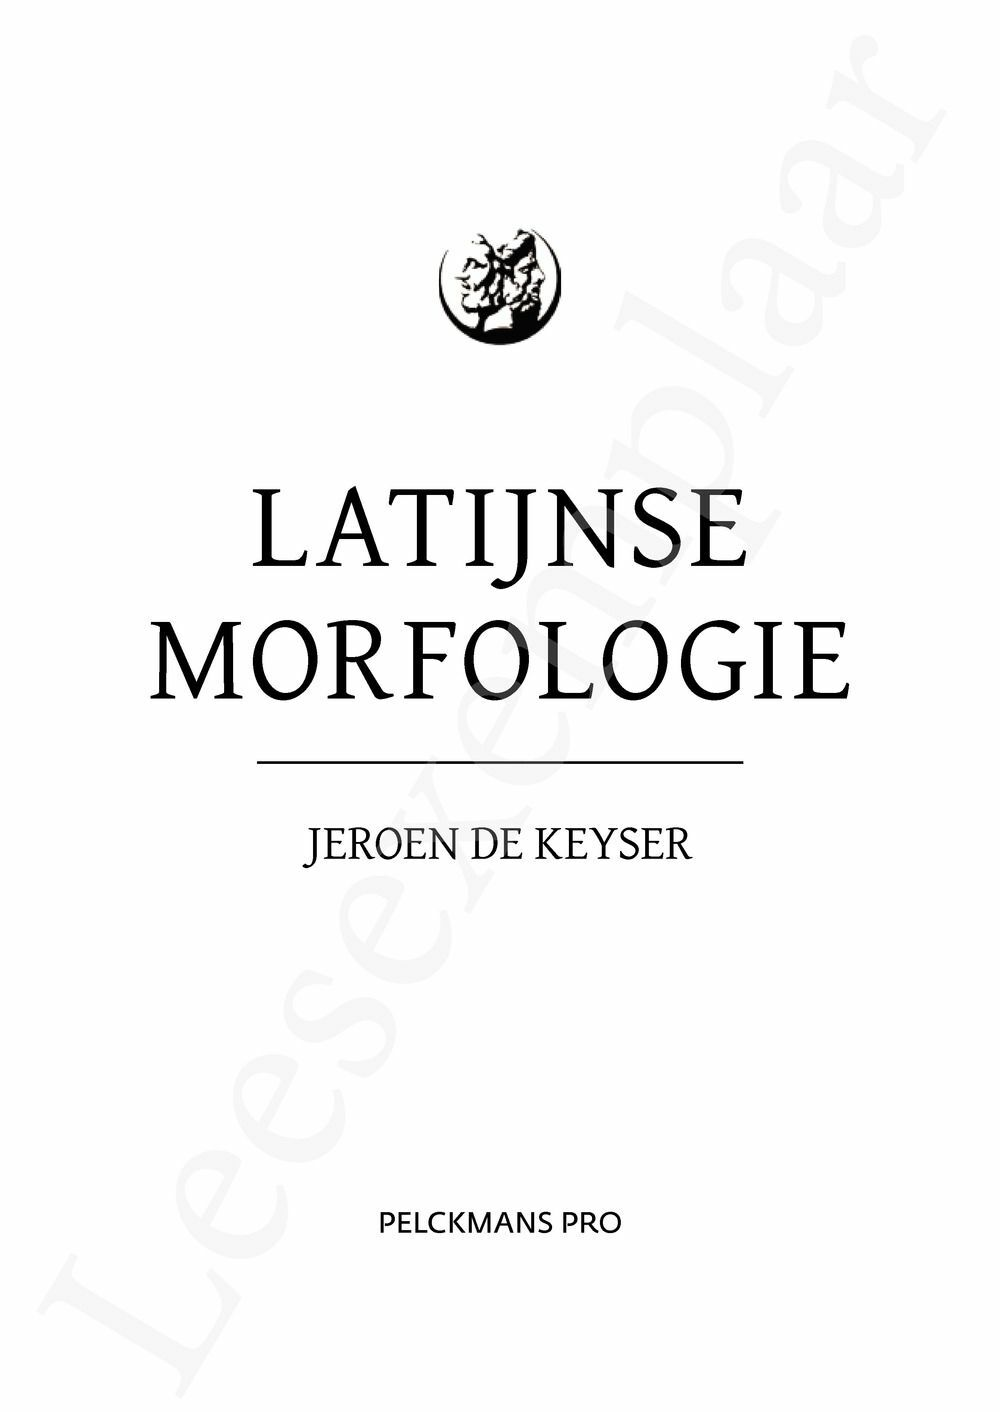 Preview: Latijnse morfologie